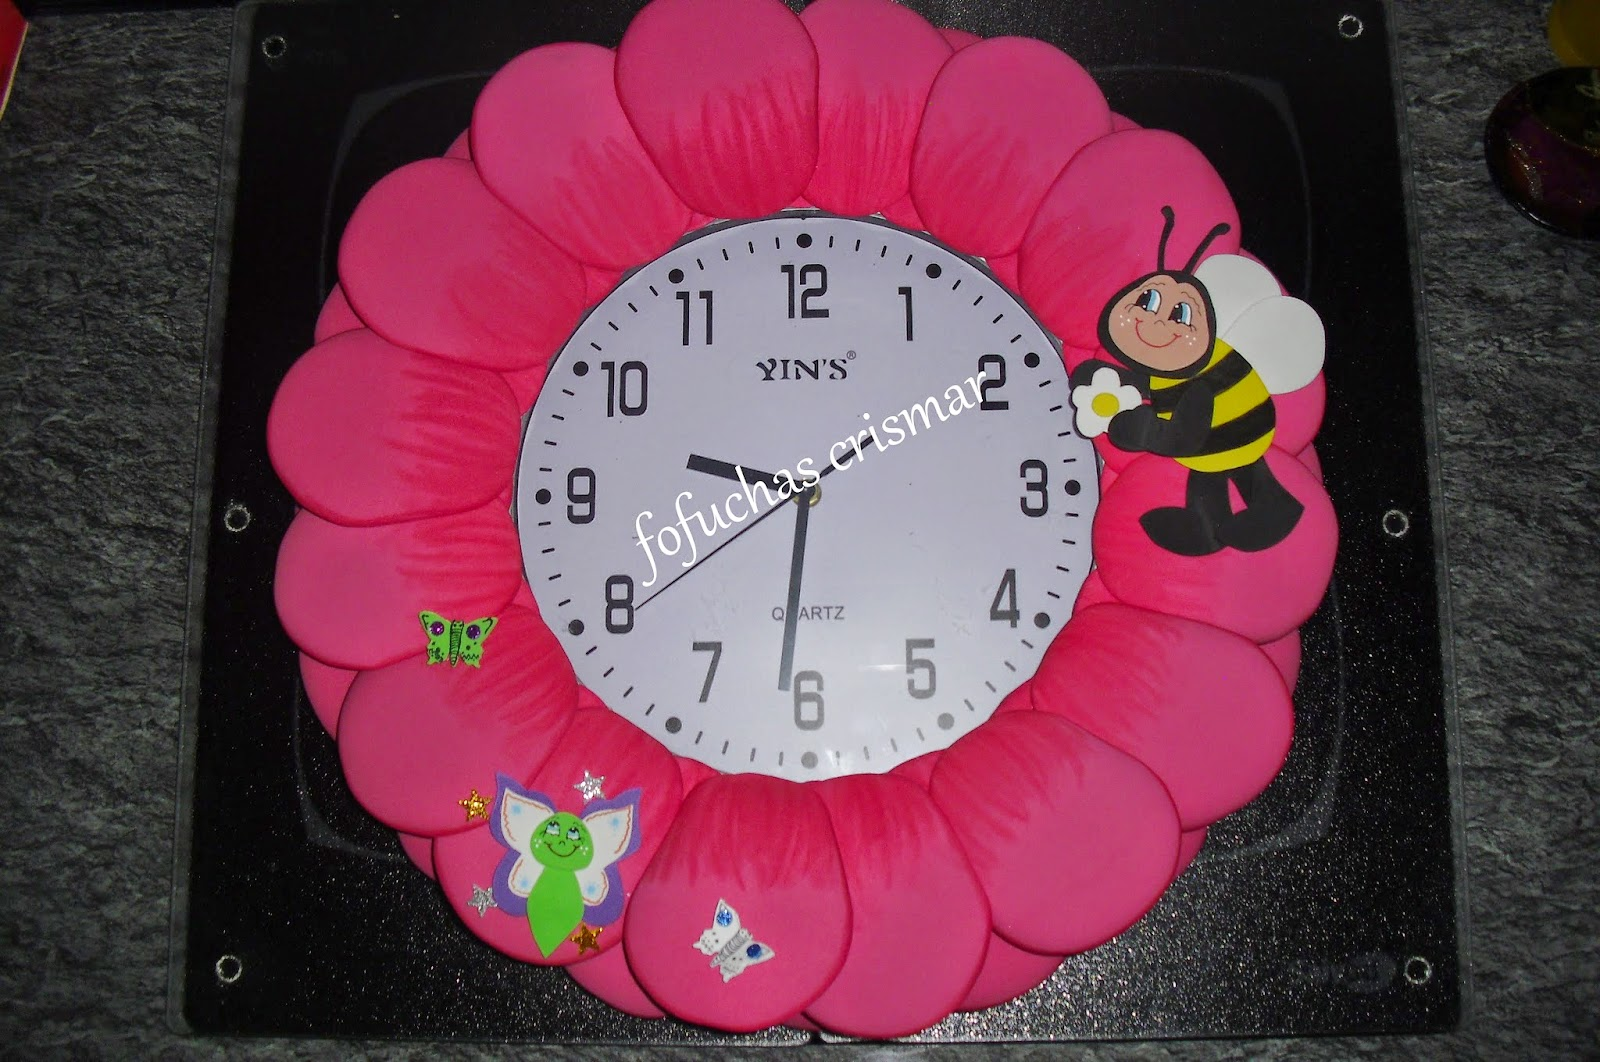 Fofuchas cris mar reloj de pared de goma eva for Relojes para salon